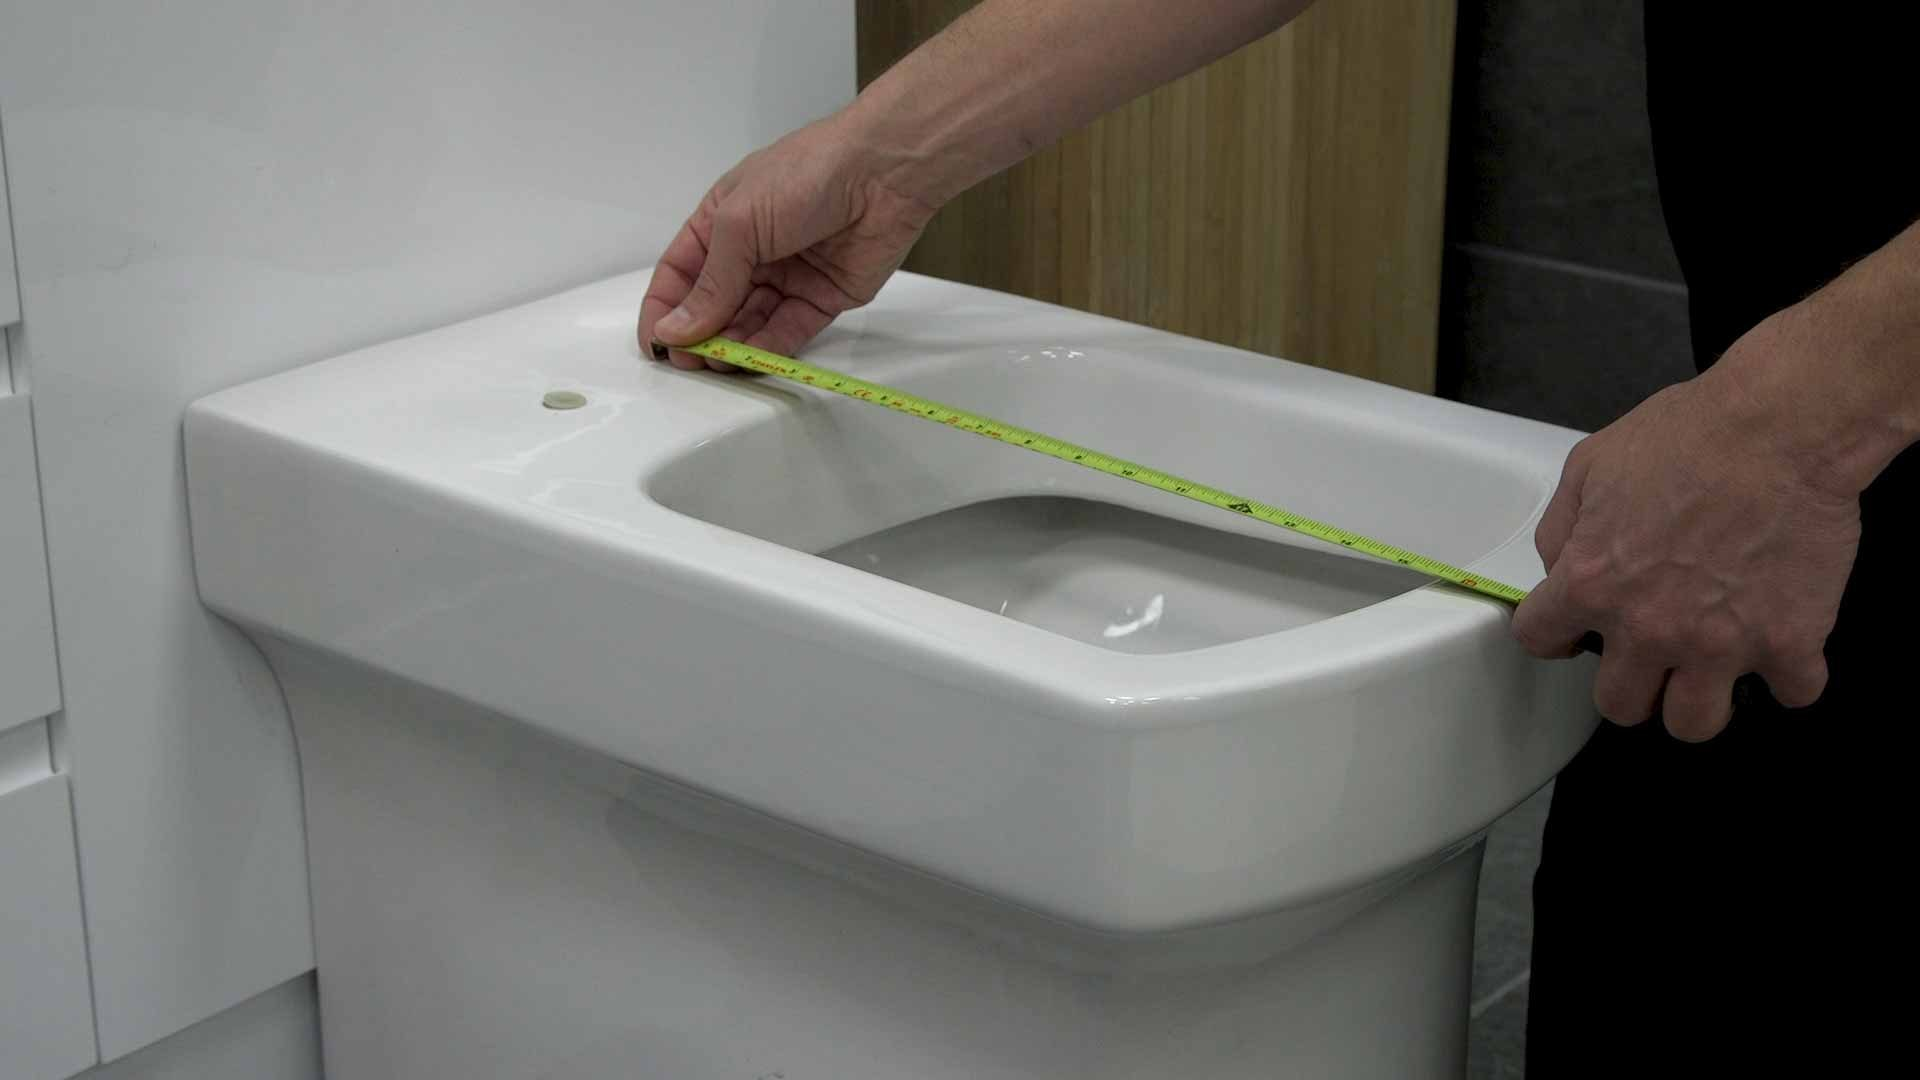 Measuring length of toilet